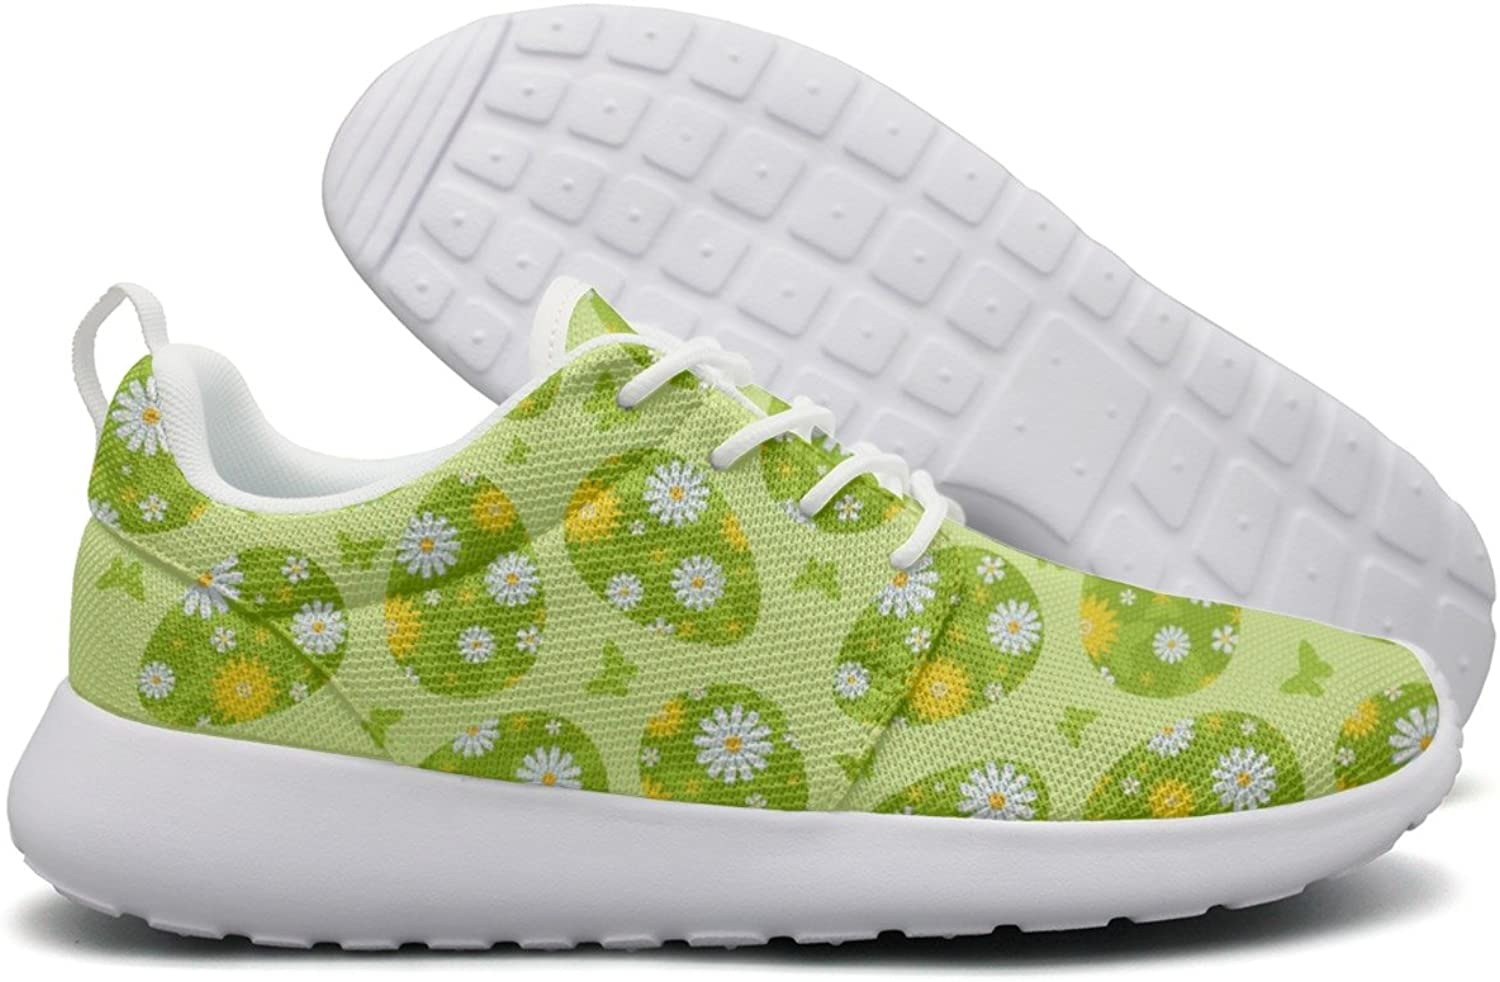 Opr7 Easter Green Daisy eau so Fresh Running shoes Lightweight Women Sneaker Athletic Comfort